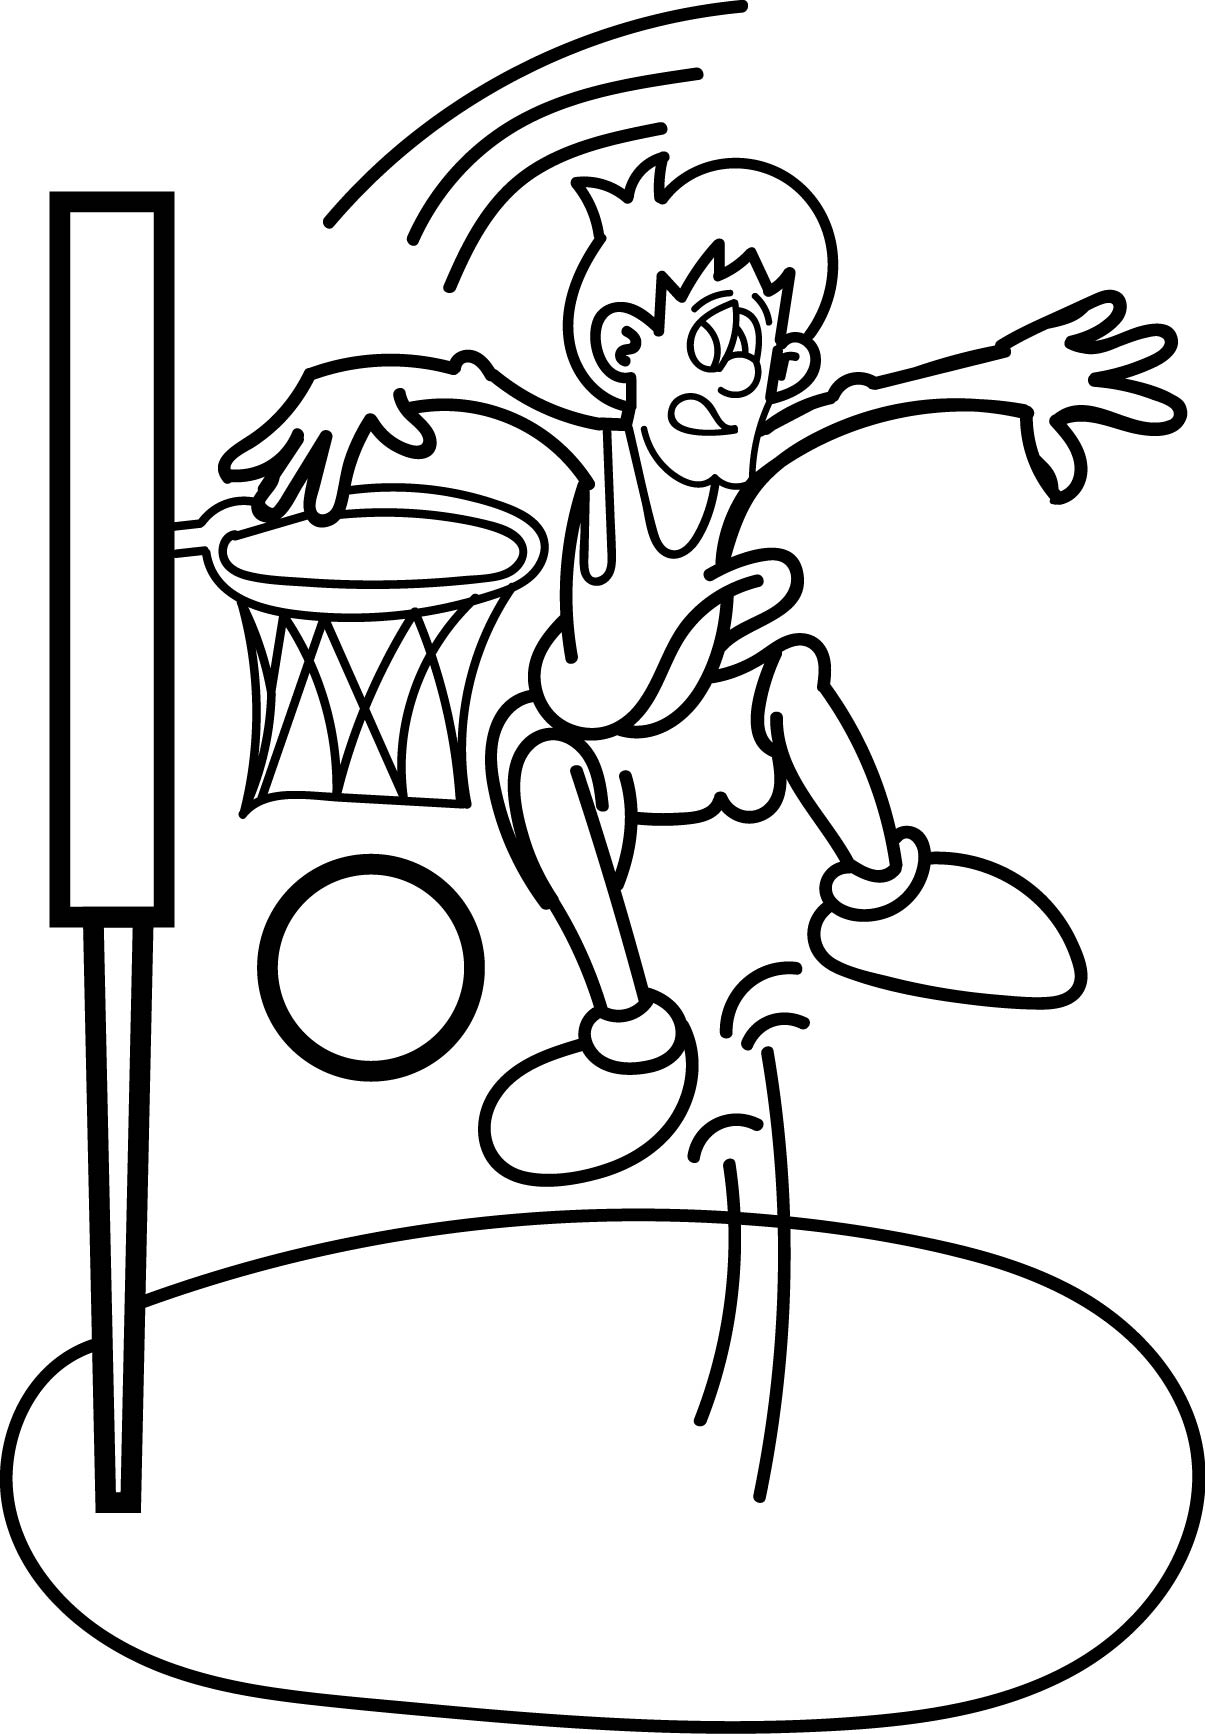 Printable Basketball Coloring Pages